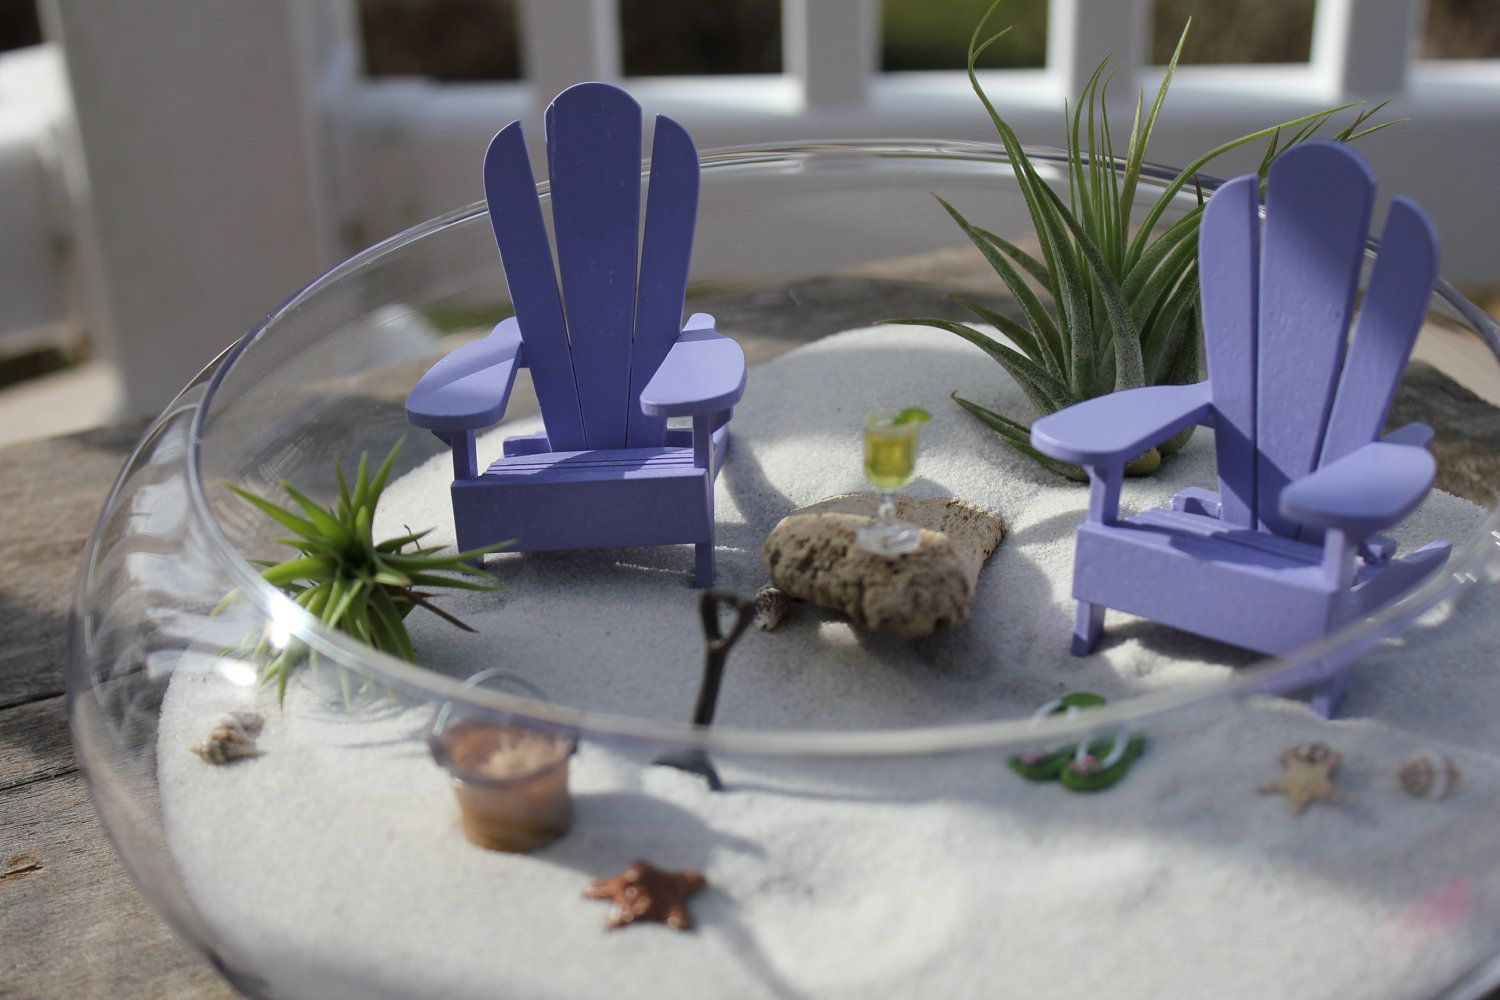 Gnome Garden: Miniature Beach Vacation With A Tiny Shovel And Sand